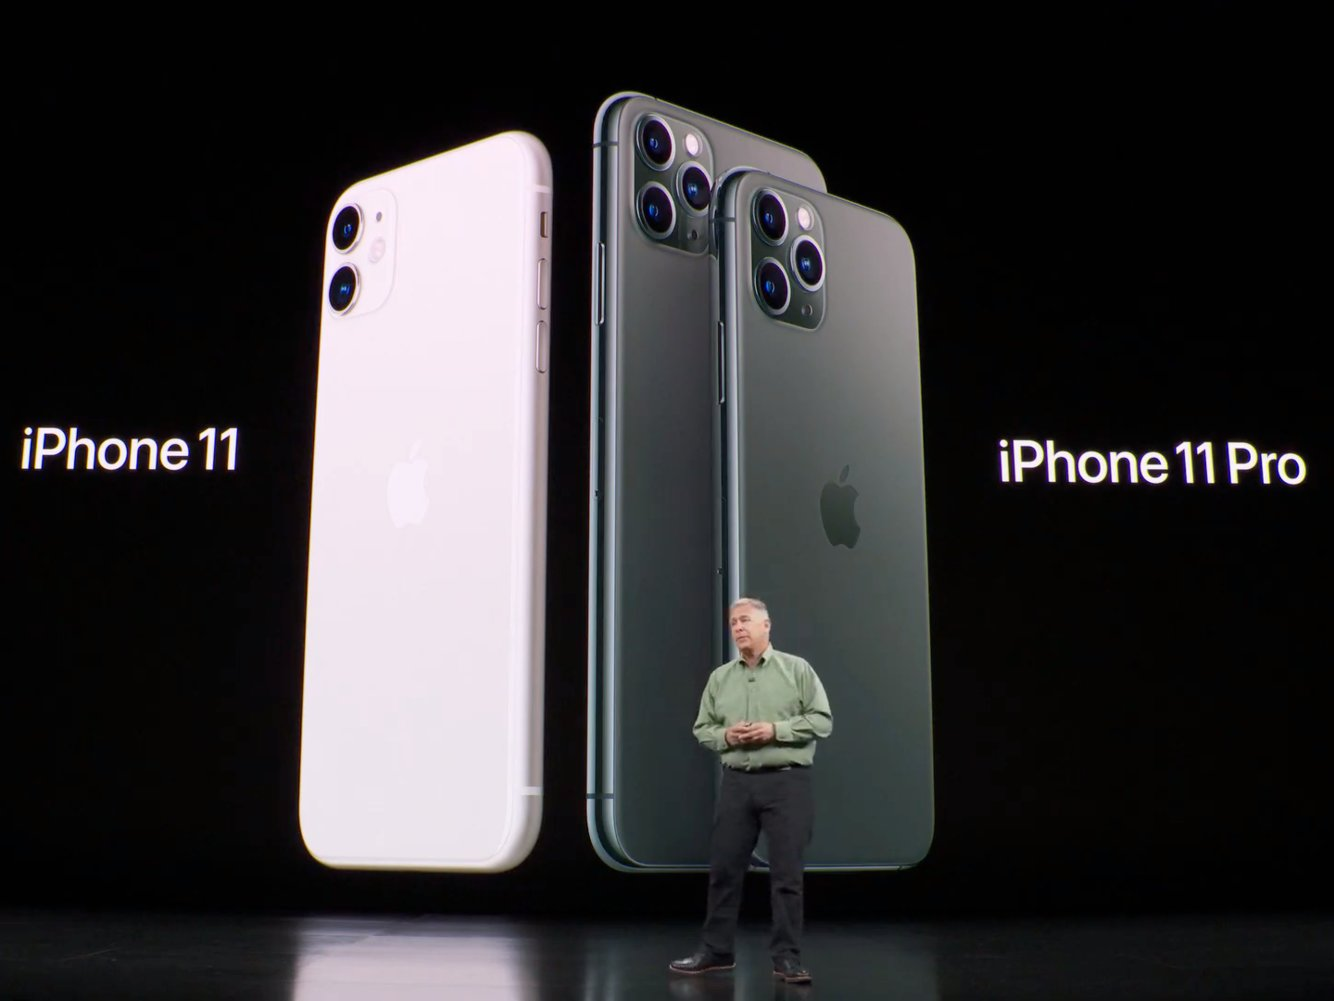 How Apple's new iPhone 11 Pro compares to its biggest rival, Samsung's Galaxy S10